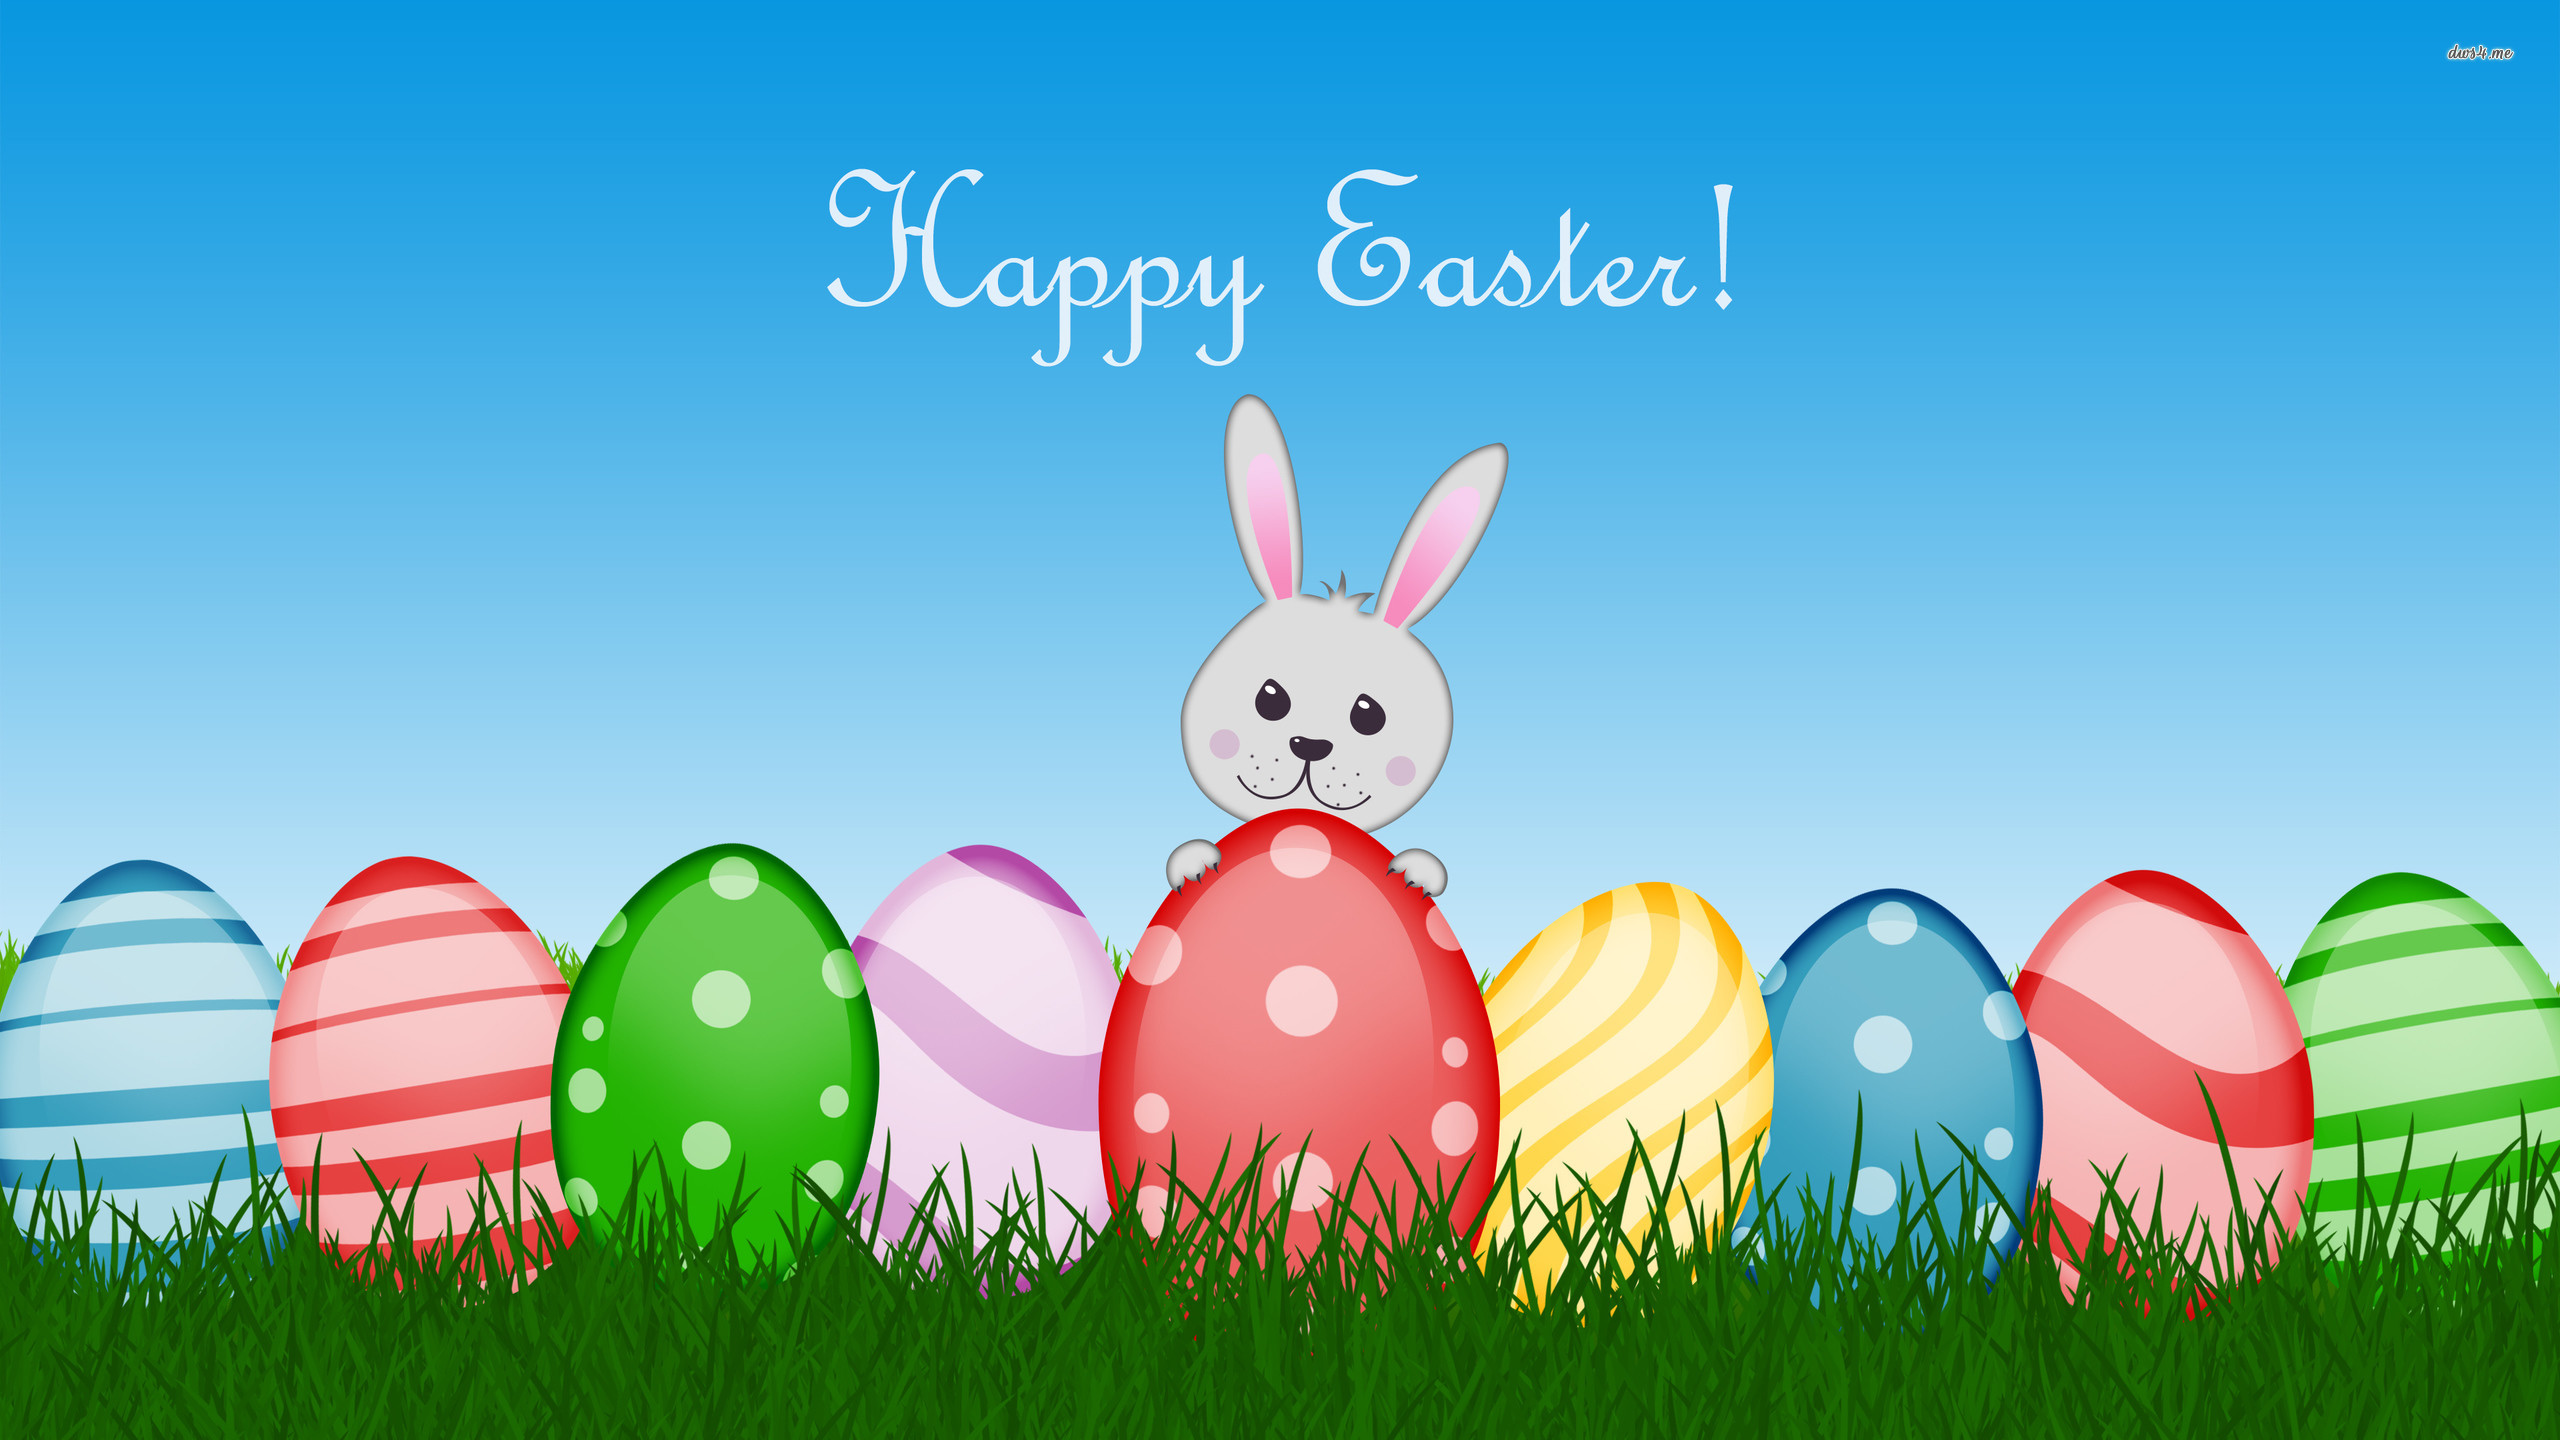 Free Easter Bunny Wallpaper (18)